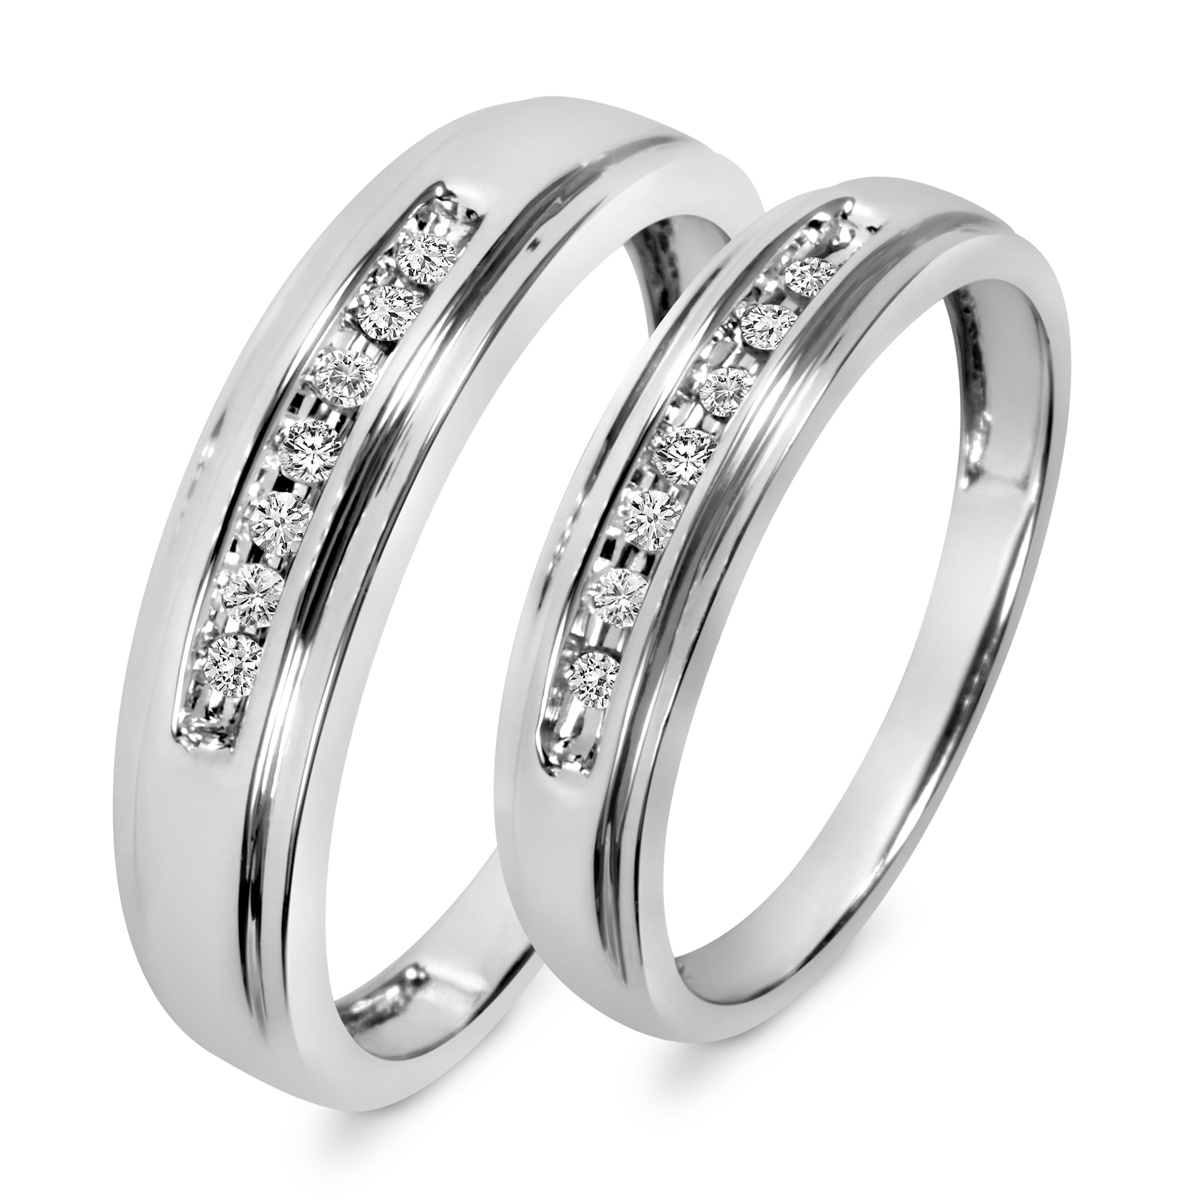 1/6 Carat T.W. Diamond His And Hers Wedding Band Set 10K White Gold